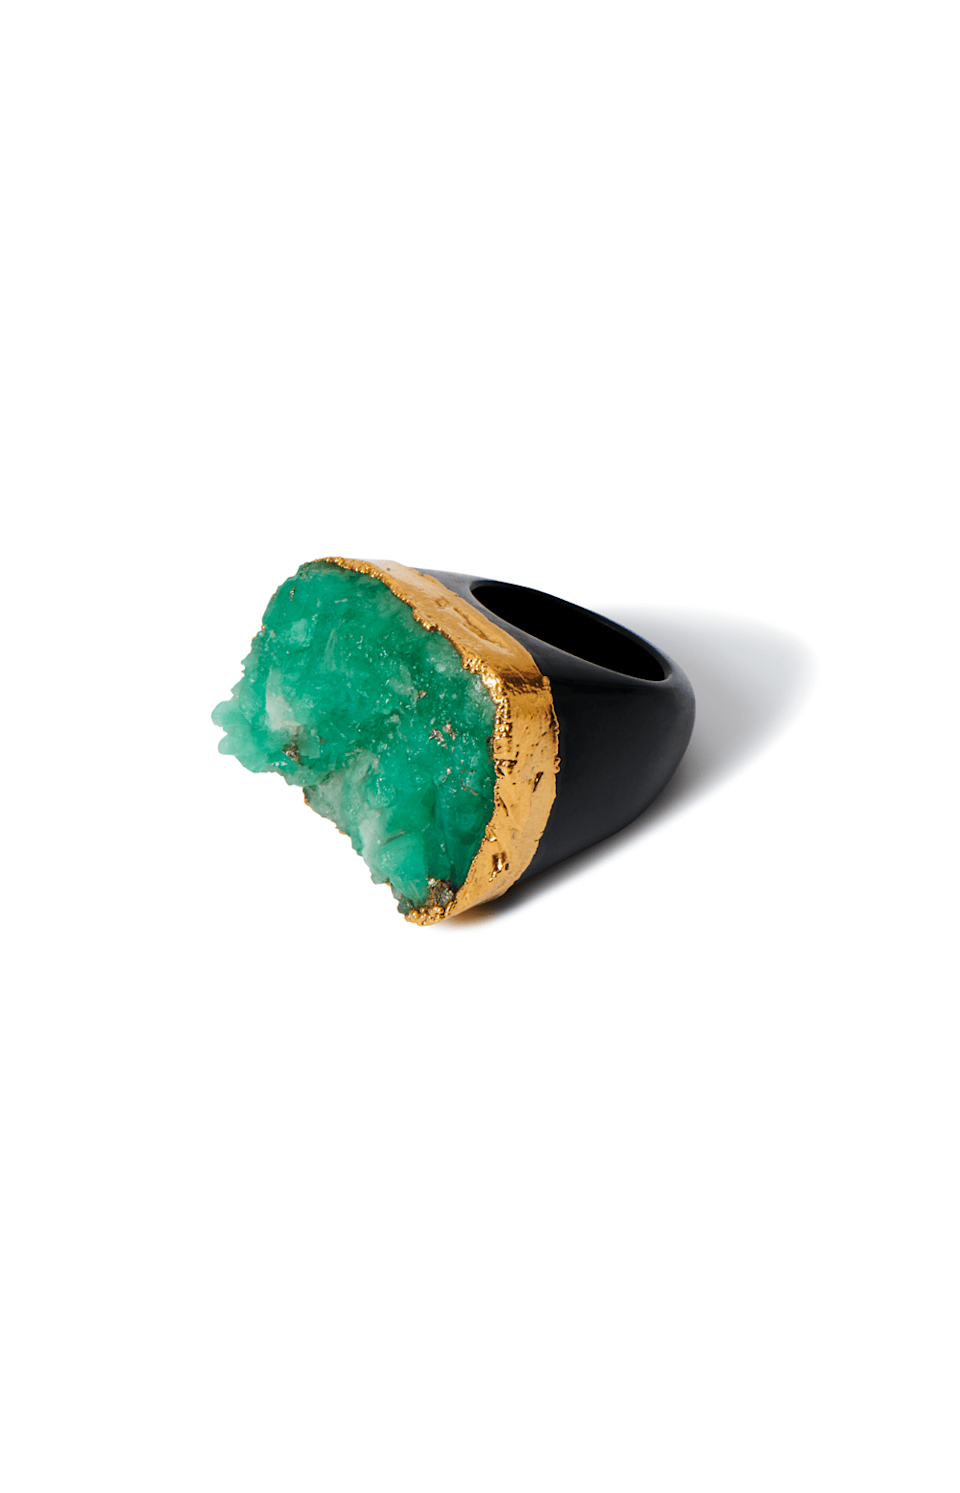 "<p>americae.com</p><p><strong>$278.00</strong></p><p><a href=""https://americae.com/collections/jewelry/products/raw-emerald-ring"" rel=""nofollow noopener"" target=""_blank"" data-ylk=""slk:BUY IT HERE"" class=""link rapid-noclick-resp"">BUY IT HERE</a></p><p>If her jewelry taste skews bolder, this raw emerald rock ring is a statement maker to covet. Whether she's graduating from high school or college, this cocktail ring will be her go-to bling at future events and dinner parties. </p>"